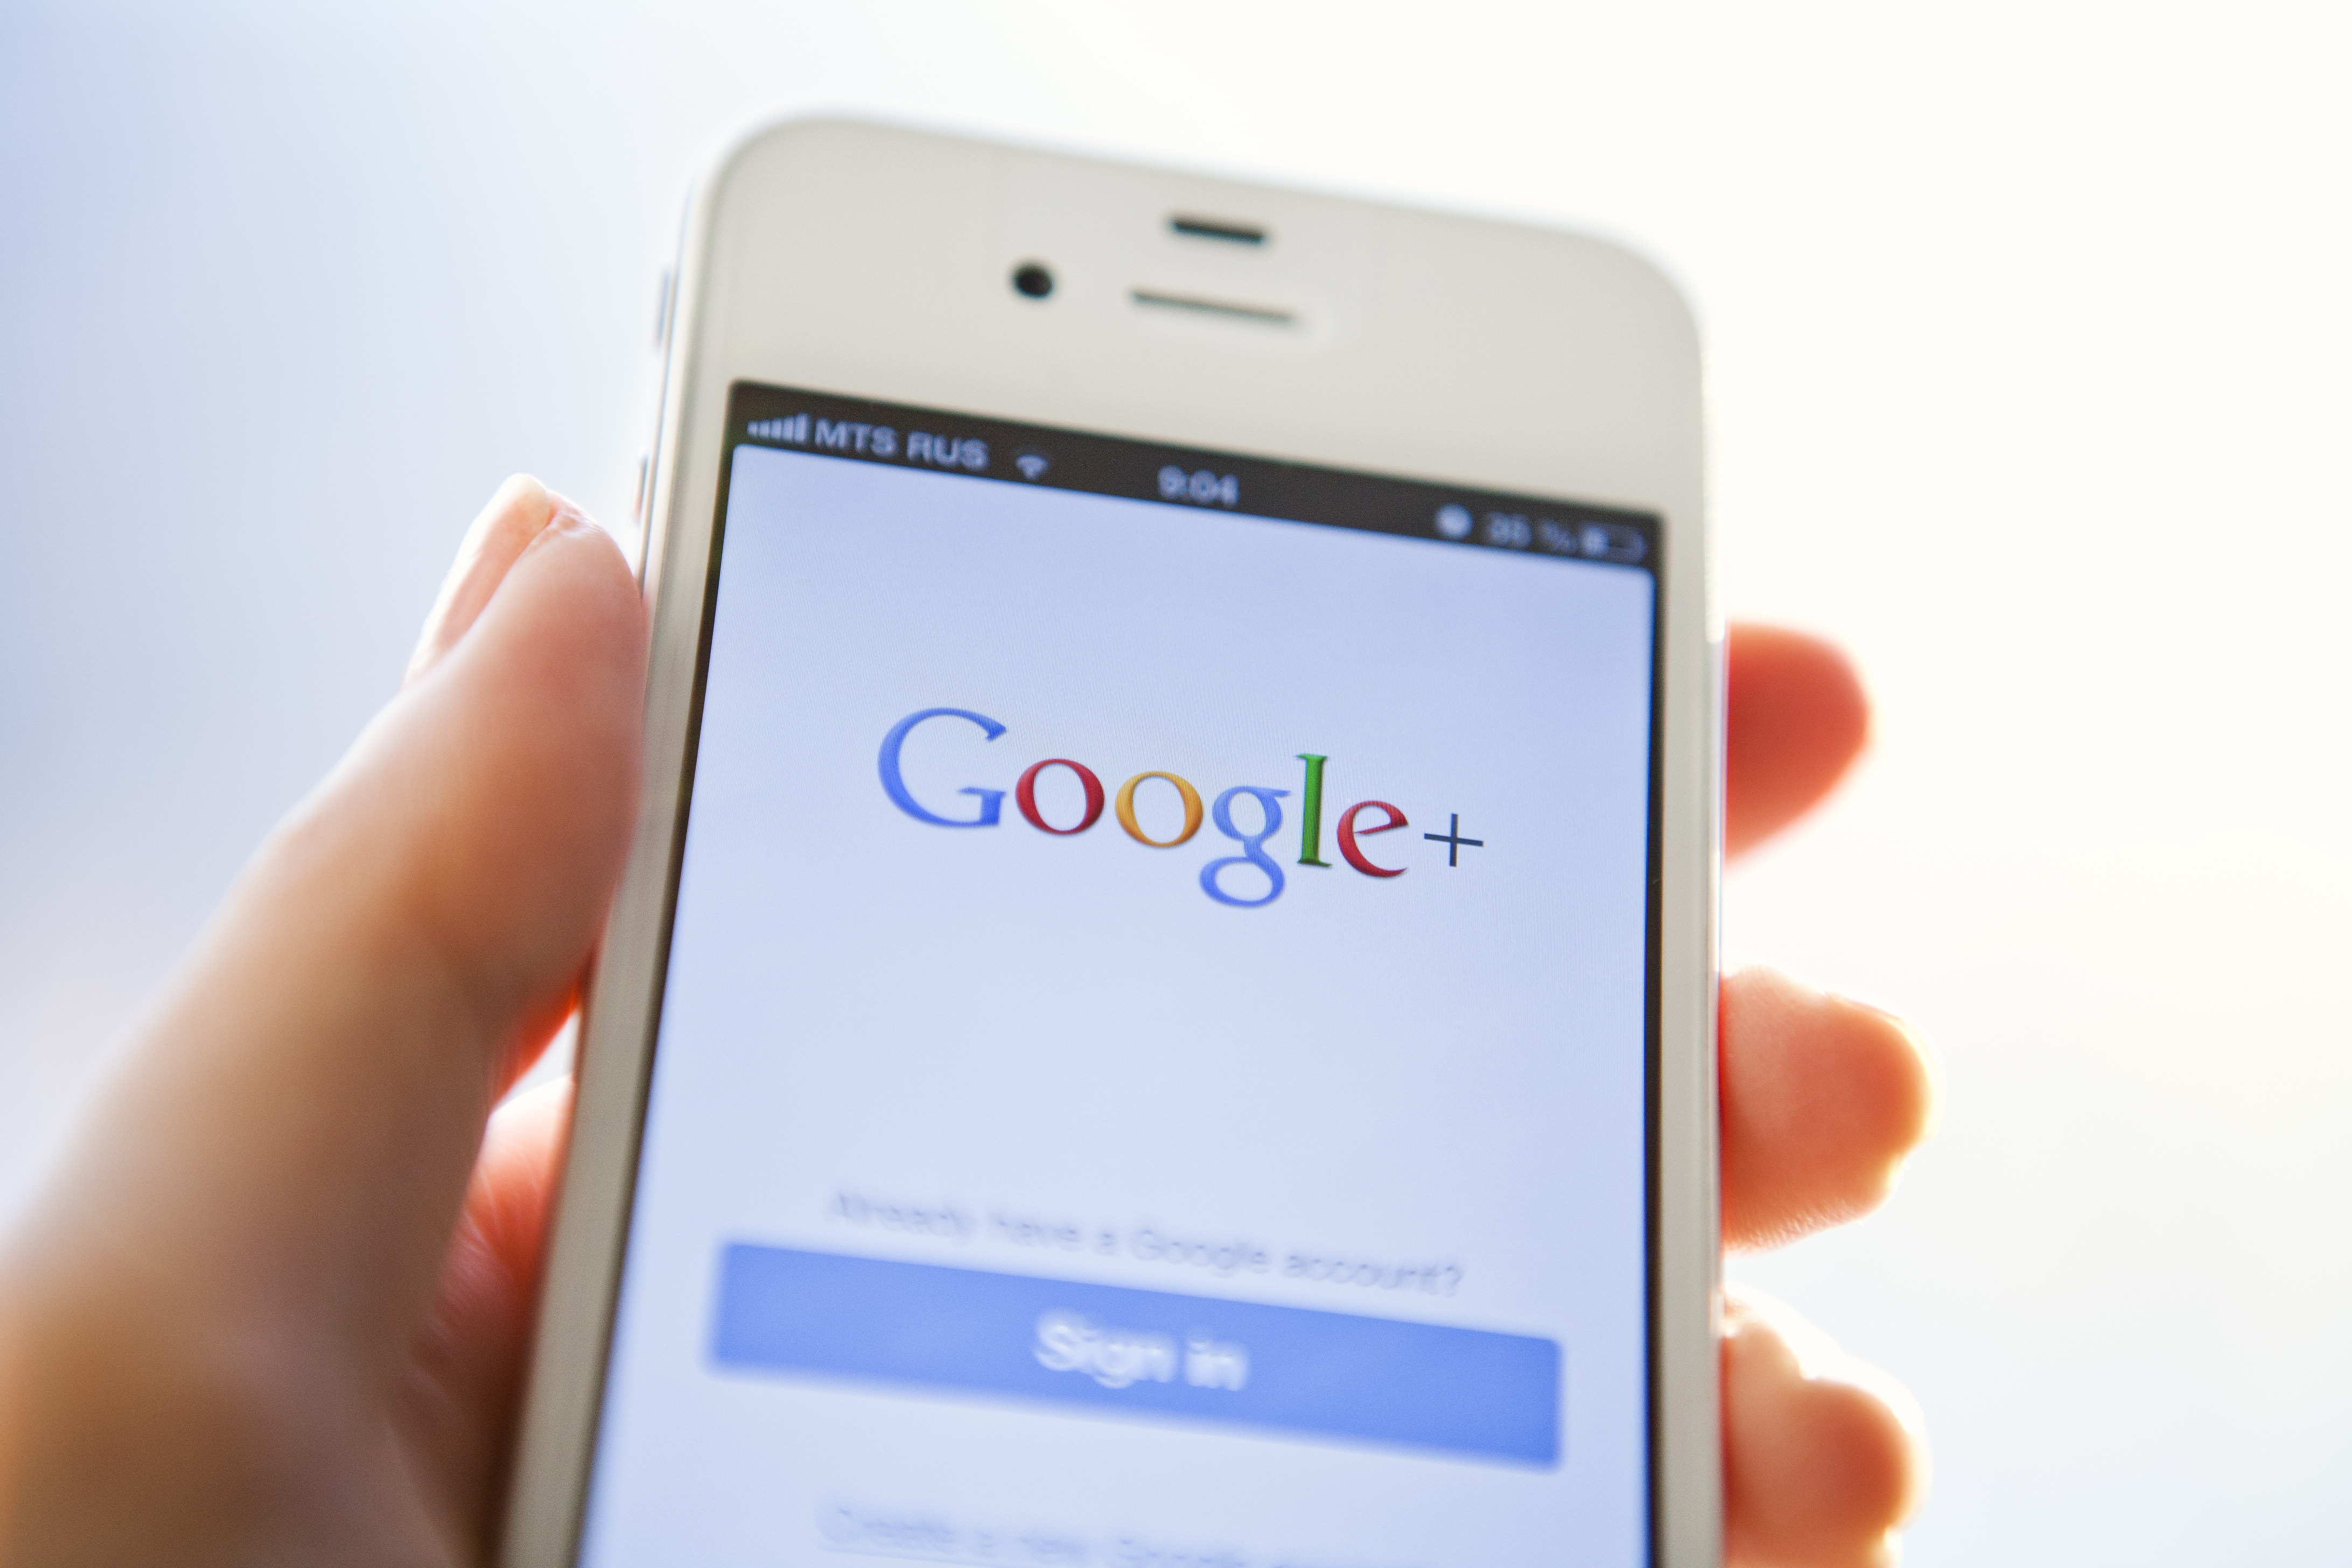 The new Google+ is coming for